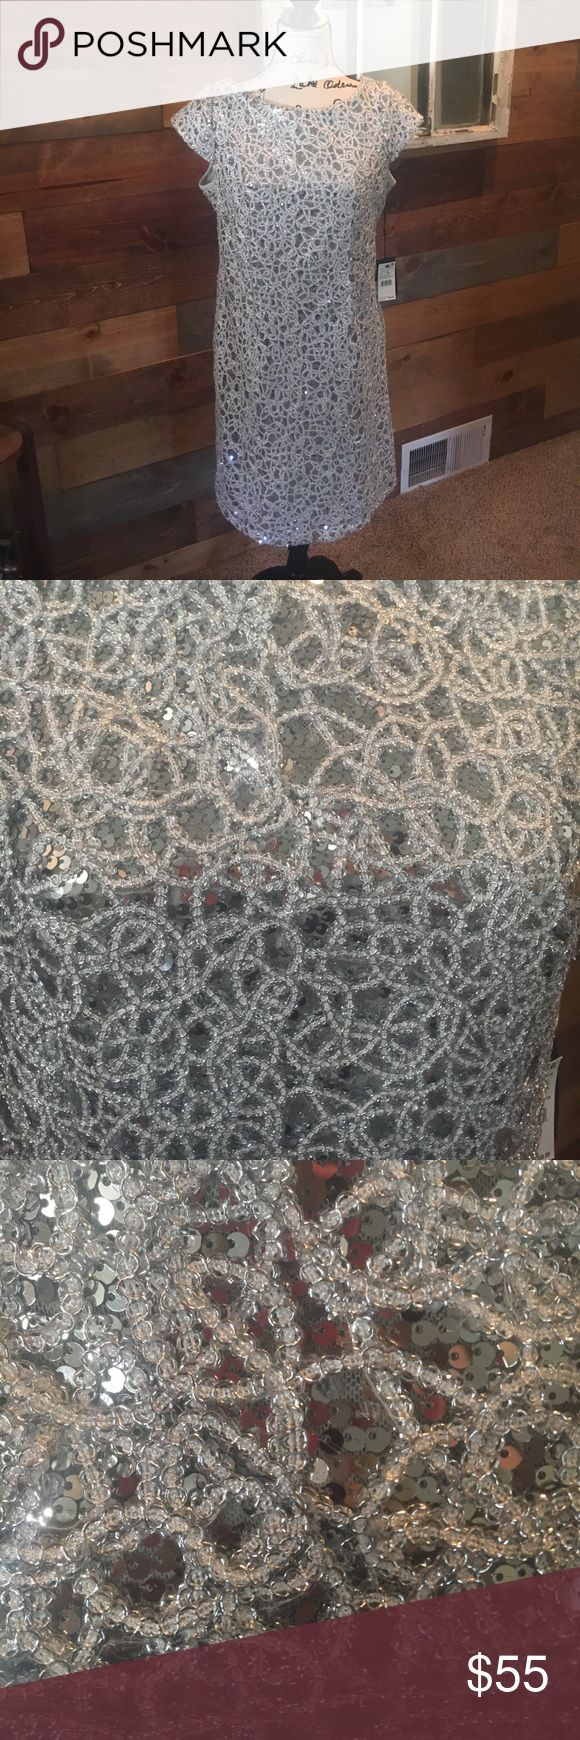 Adrianna Papell New silver sequin dress size 14 Adrianna Papell New silver sequin cocktail dress size 14. Very sparkly and comfortable. Fitted but not tight. Website refers to it as curve skimming. Brand new with tags but store doesn't accept returns and I found another dress. Has cap sleeves. Purchased dress for $69.99 and with S&H & taxes it came to $80. Adrianna Papell Dresses Midi